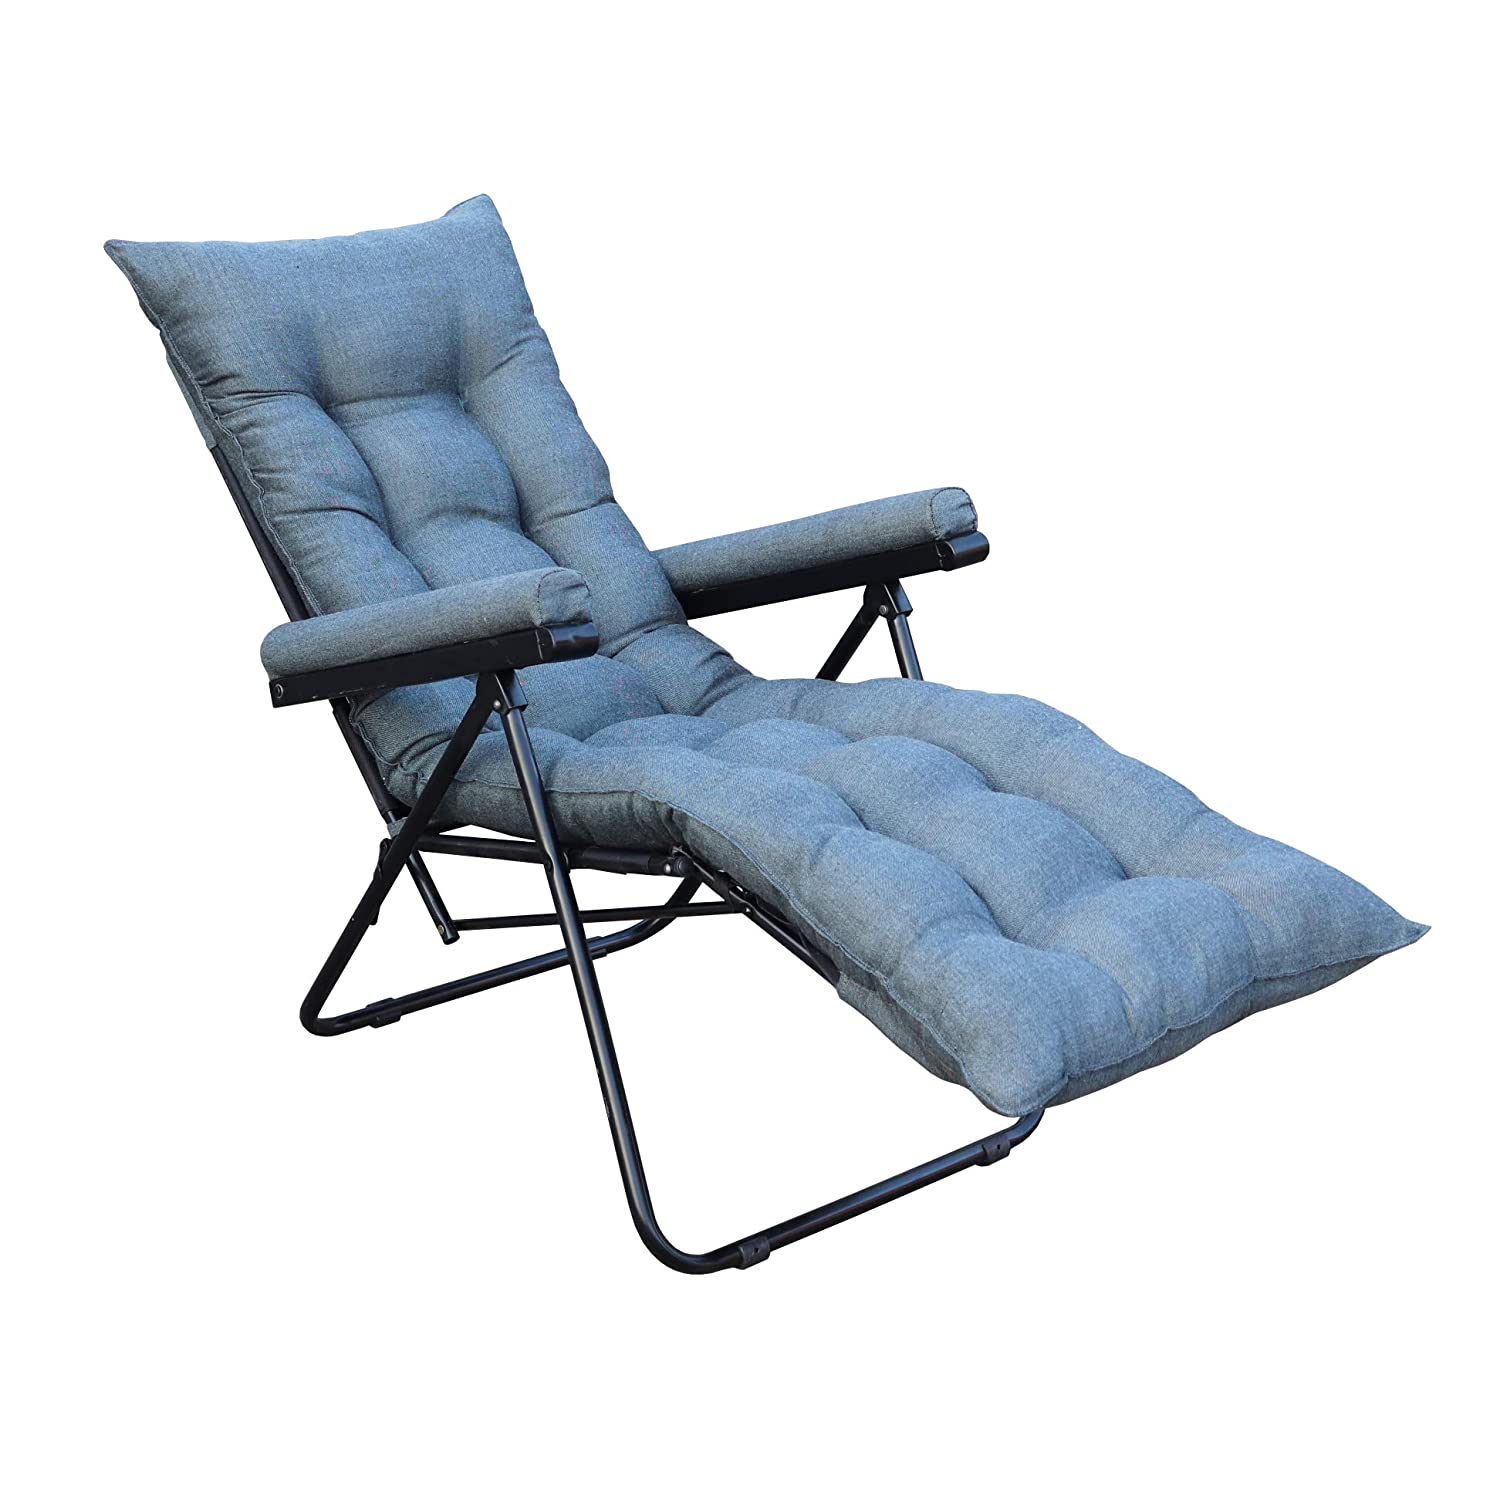 3.Spacecrafts Recliner Folding Easy Chair for Home Relax